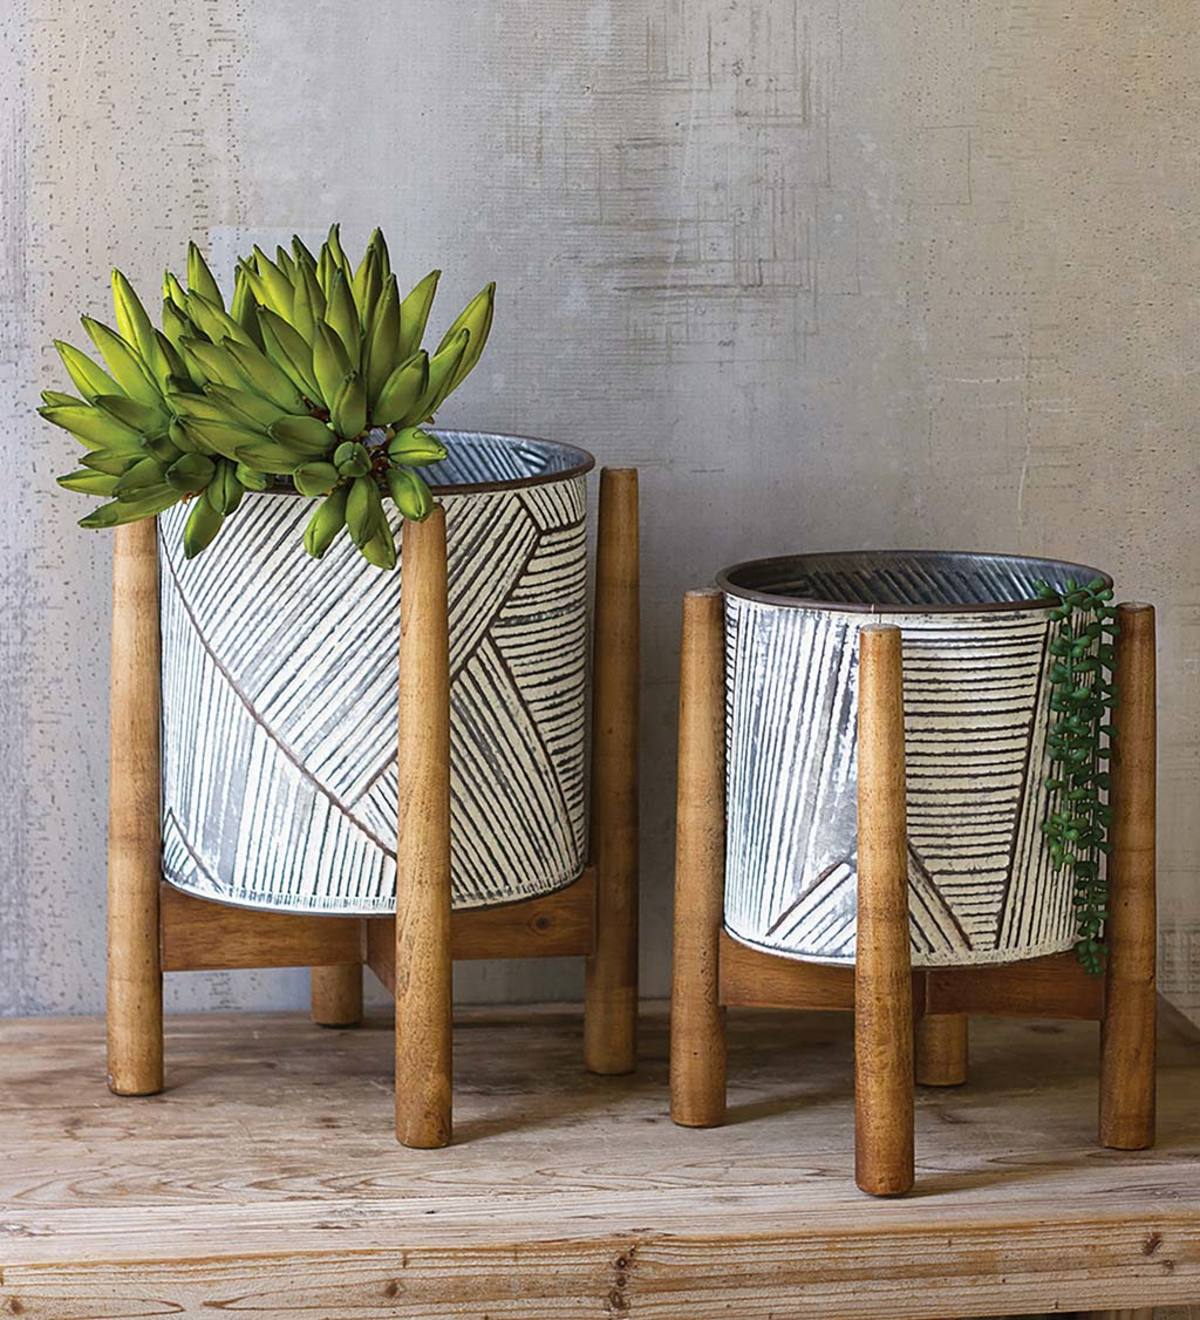 Set of 2 Etched Metal Planters on Stands